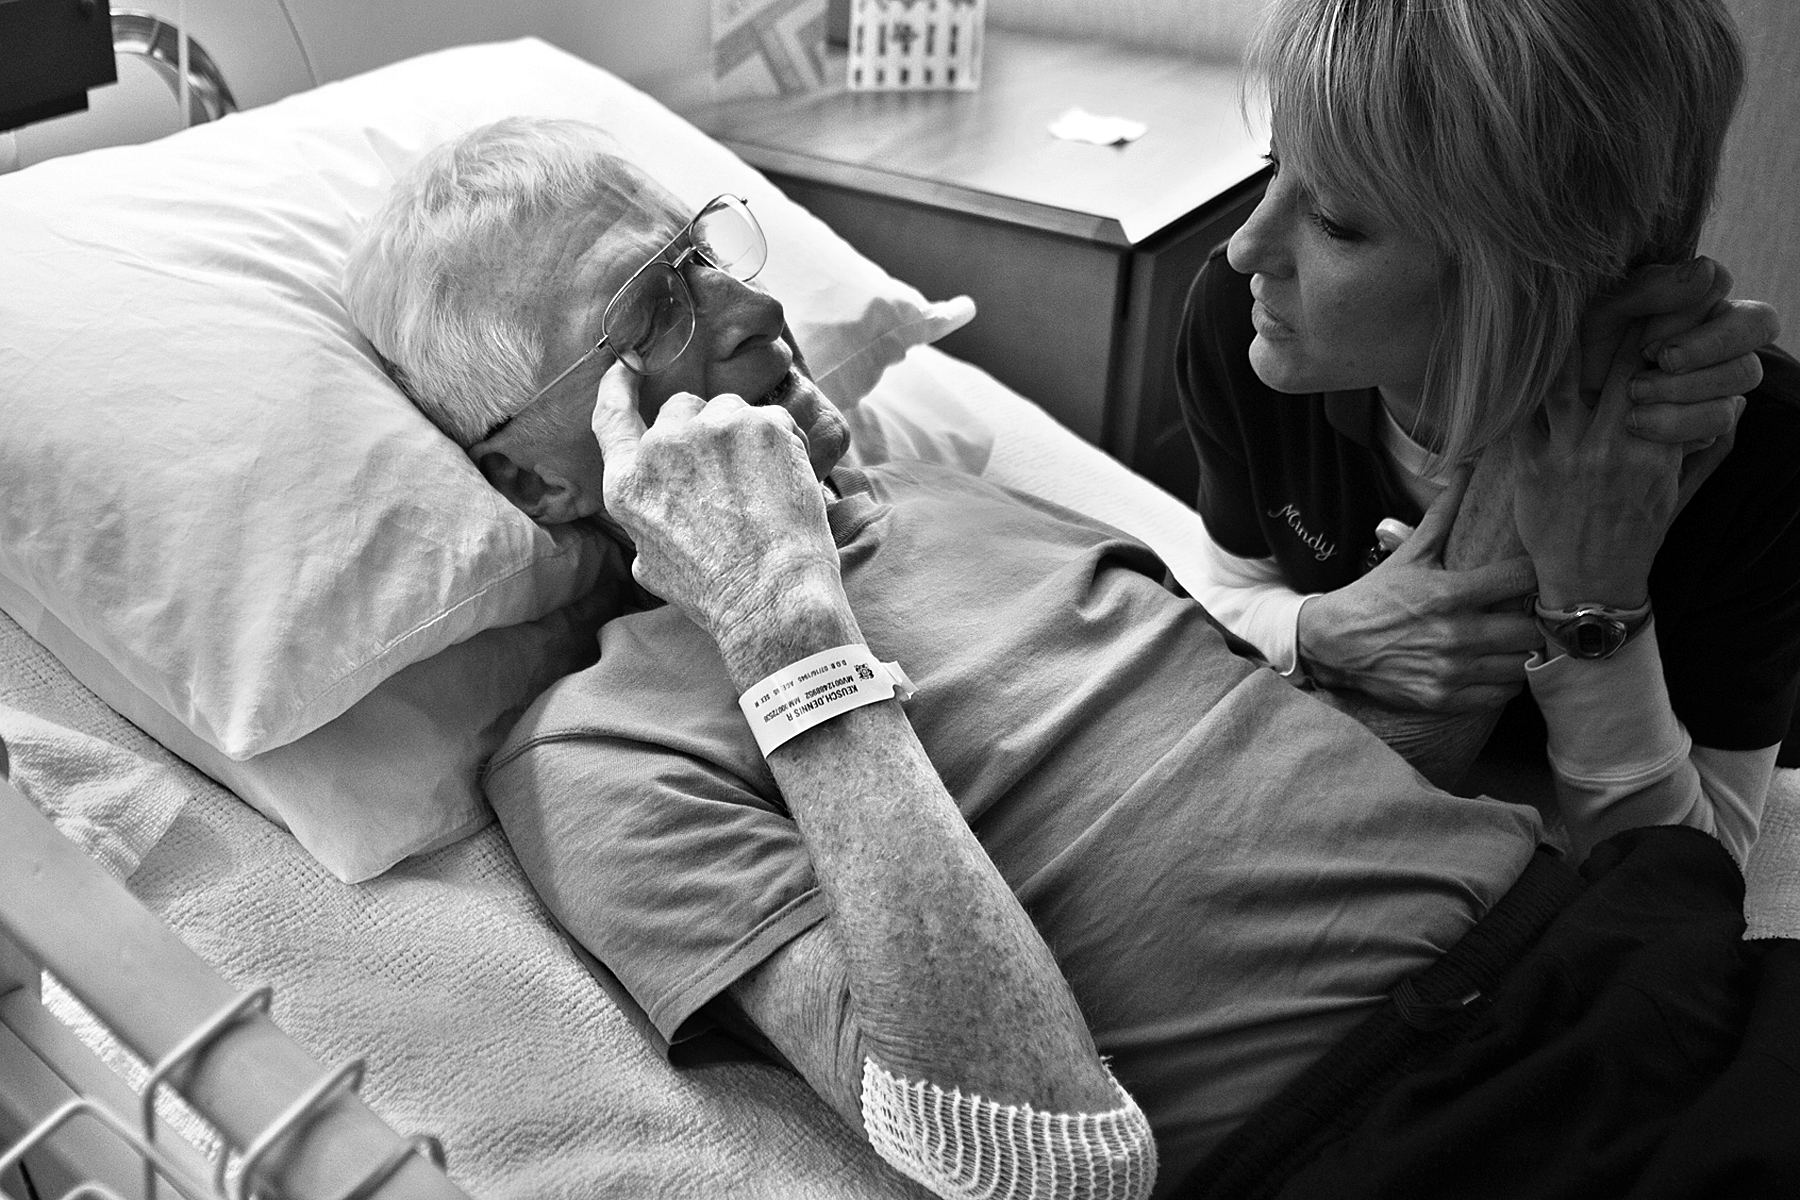 Physical therapy assistant Mindy Bueltel of Jasper tried to comfort Red and tell him there was no need to apologize for his struggles while she worked with him in his room at Memorial Hospital and Health Care Center in Jasper. Red became emotional as his body struggled with the therapy session and the idea of being limited in his movement.